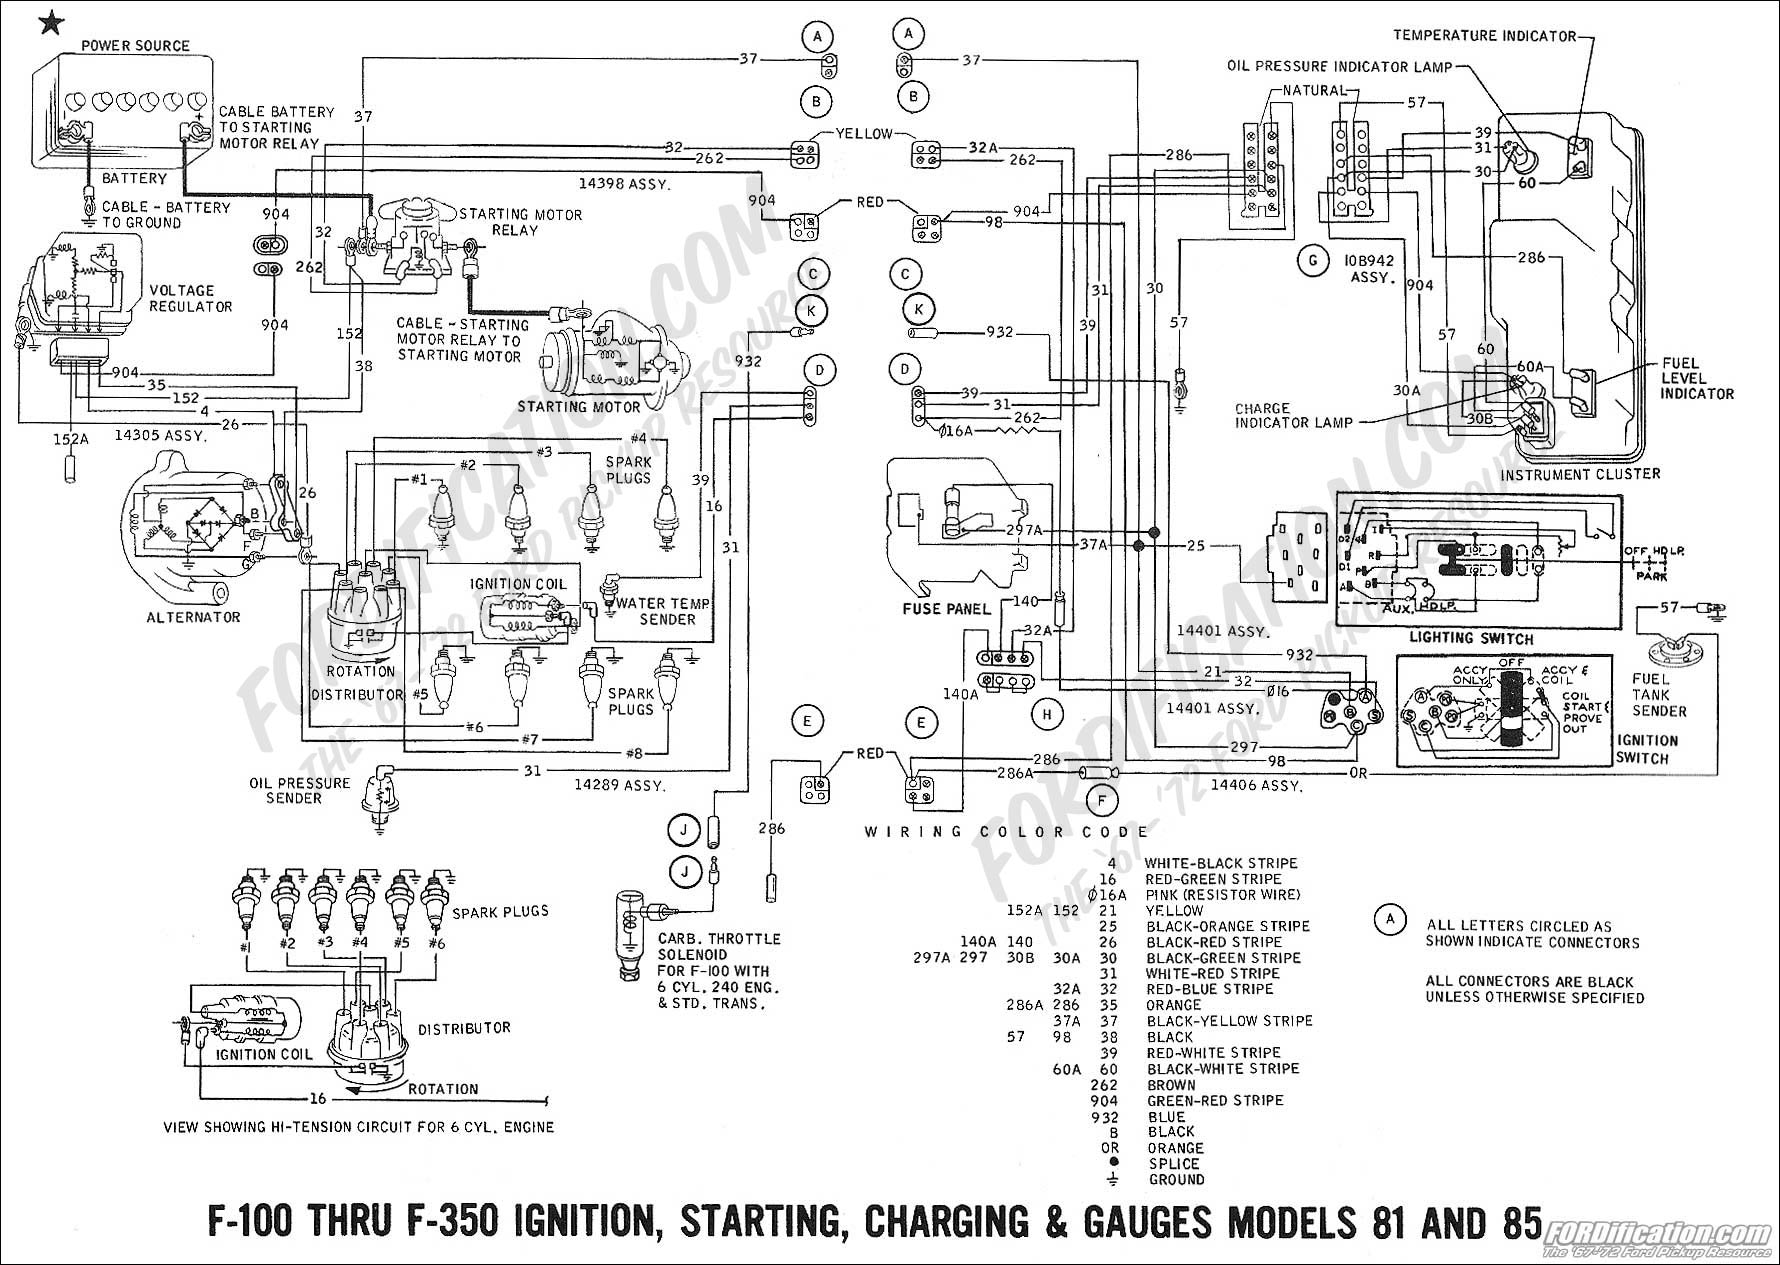 Dodge Ram Dash Light Wiring Diagram Library 1973 Chevy Fuse Box Diagrams 2014 Ford F 250 Schematic Opinions About U2022 1974 F100